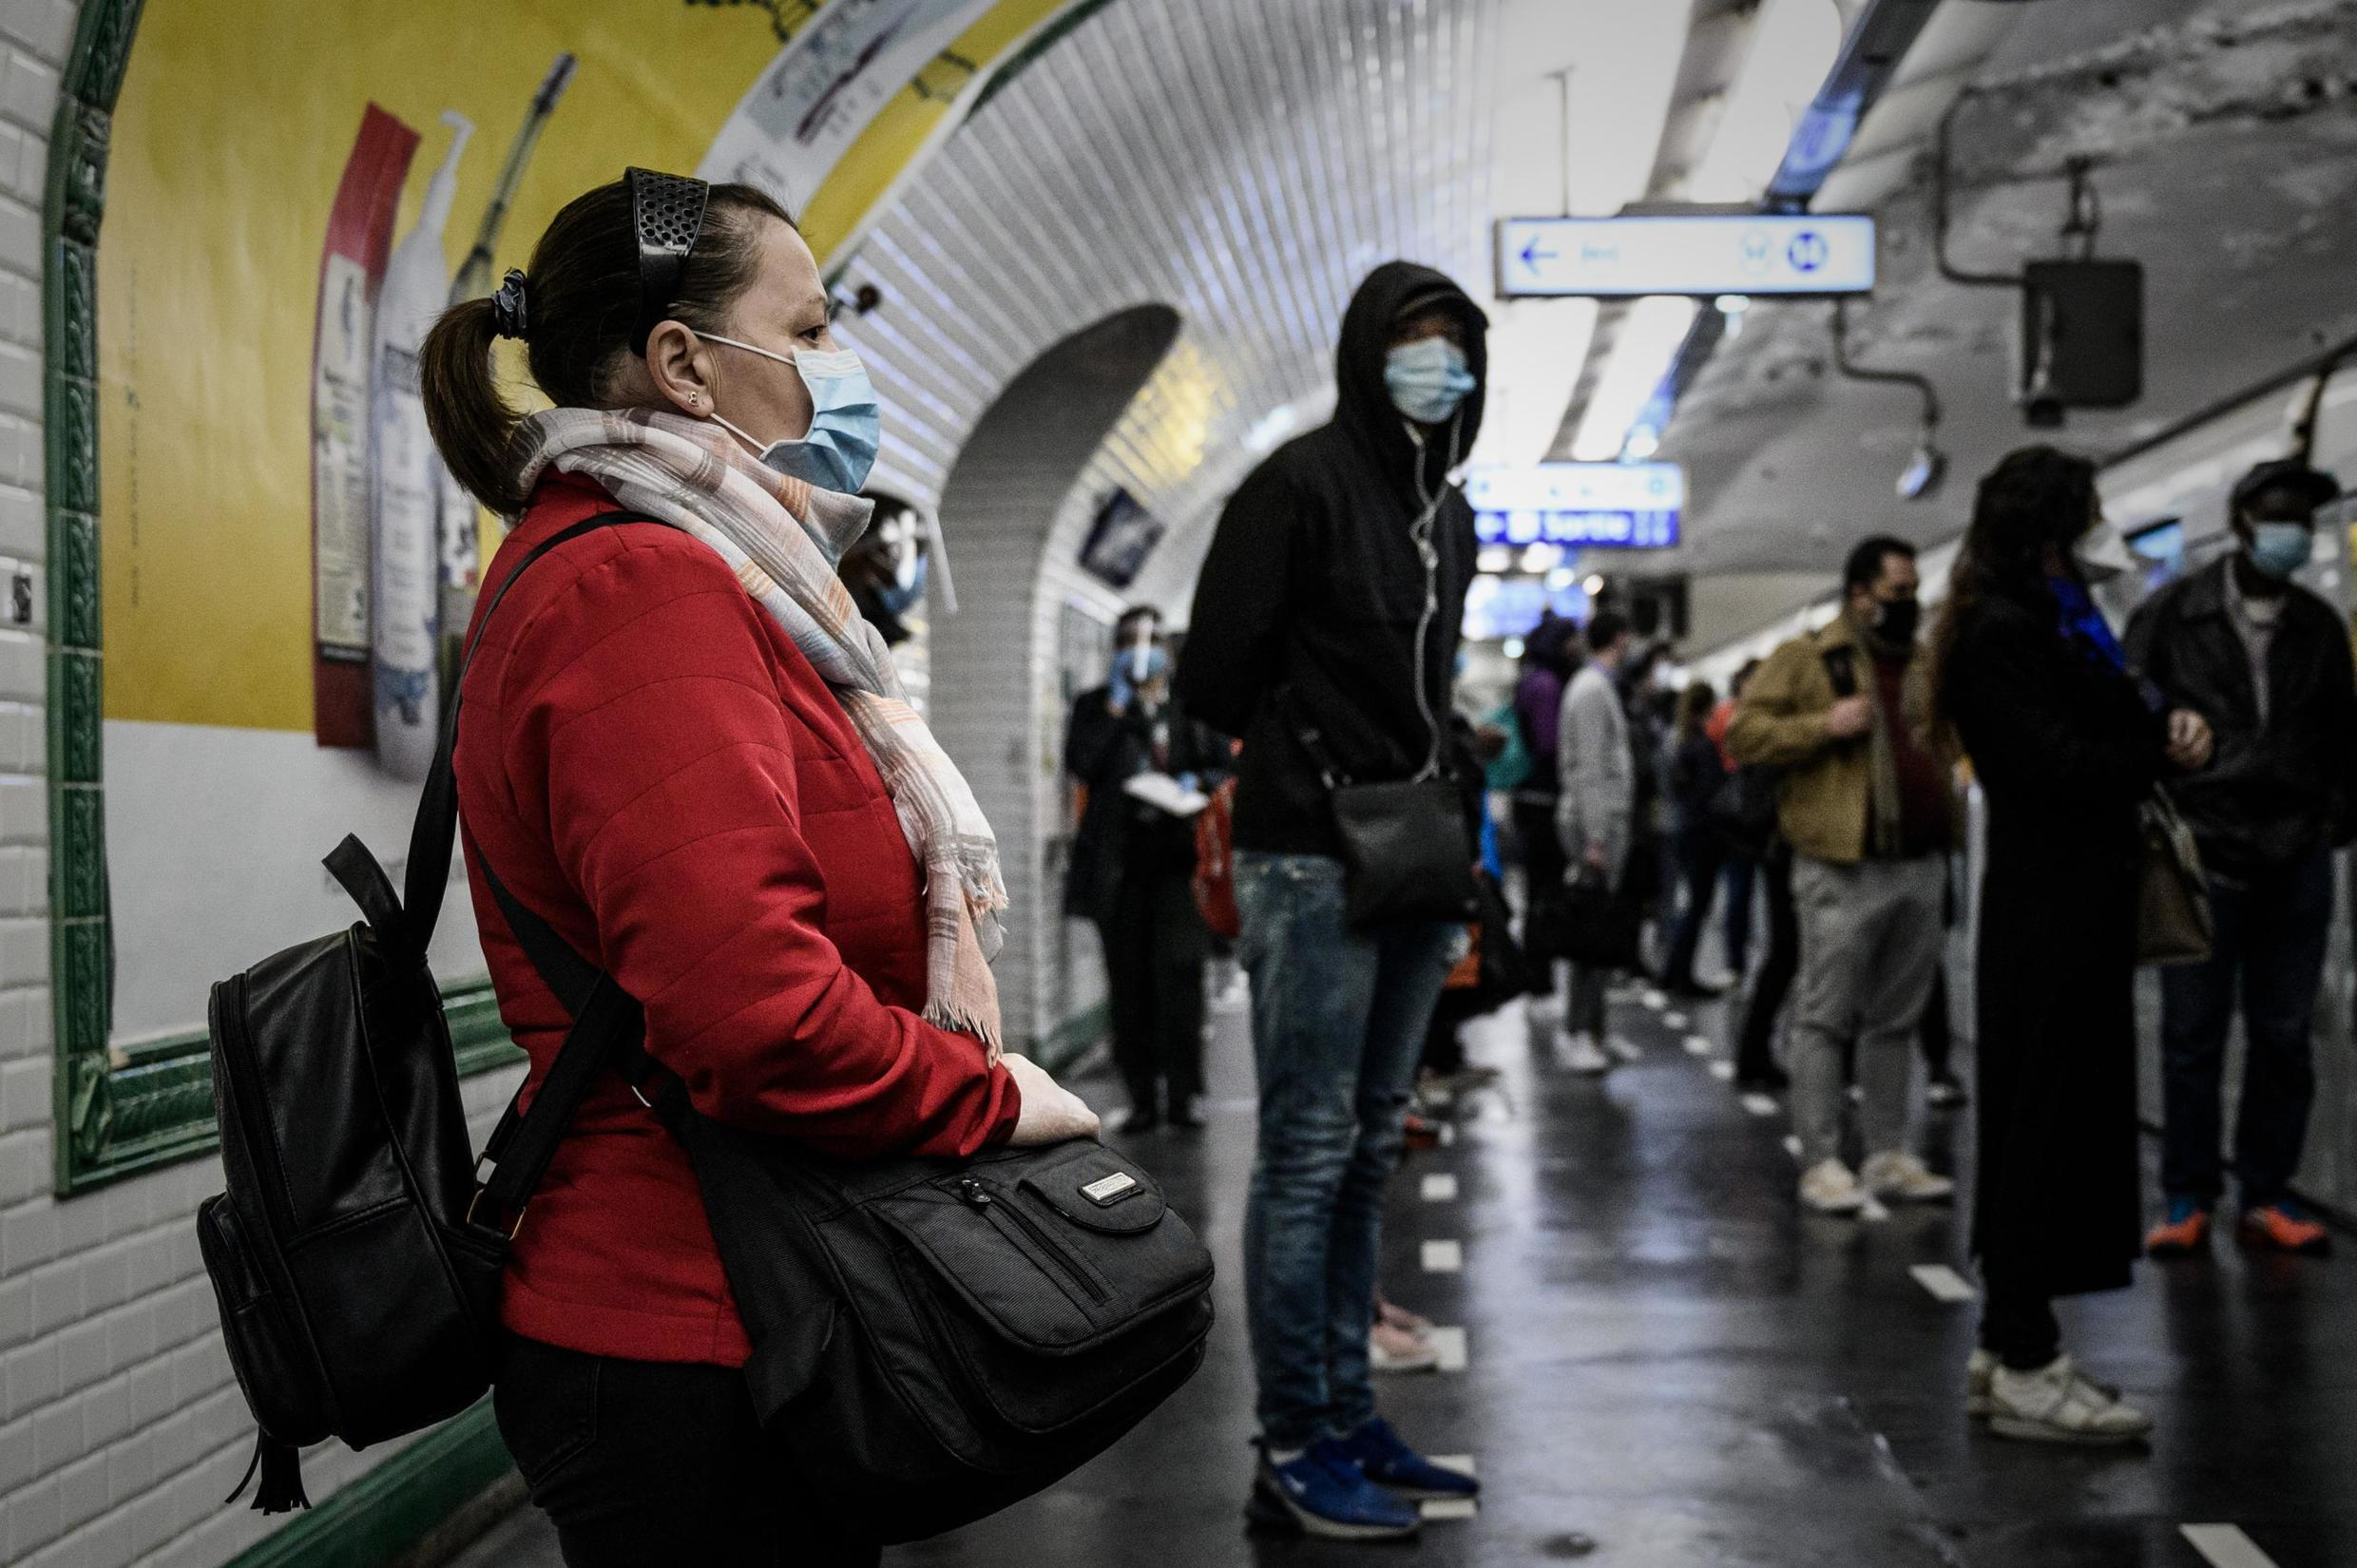 Not all metro users have respected the mandatory masks rule. How will it go now that the health emergency has ended?